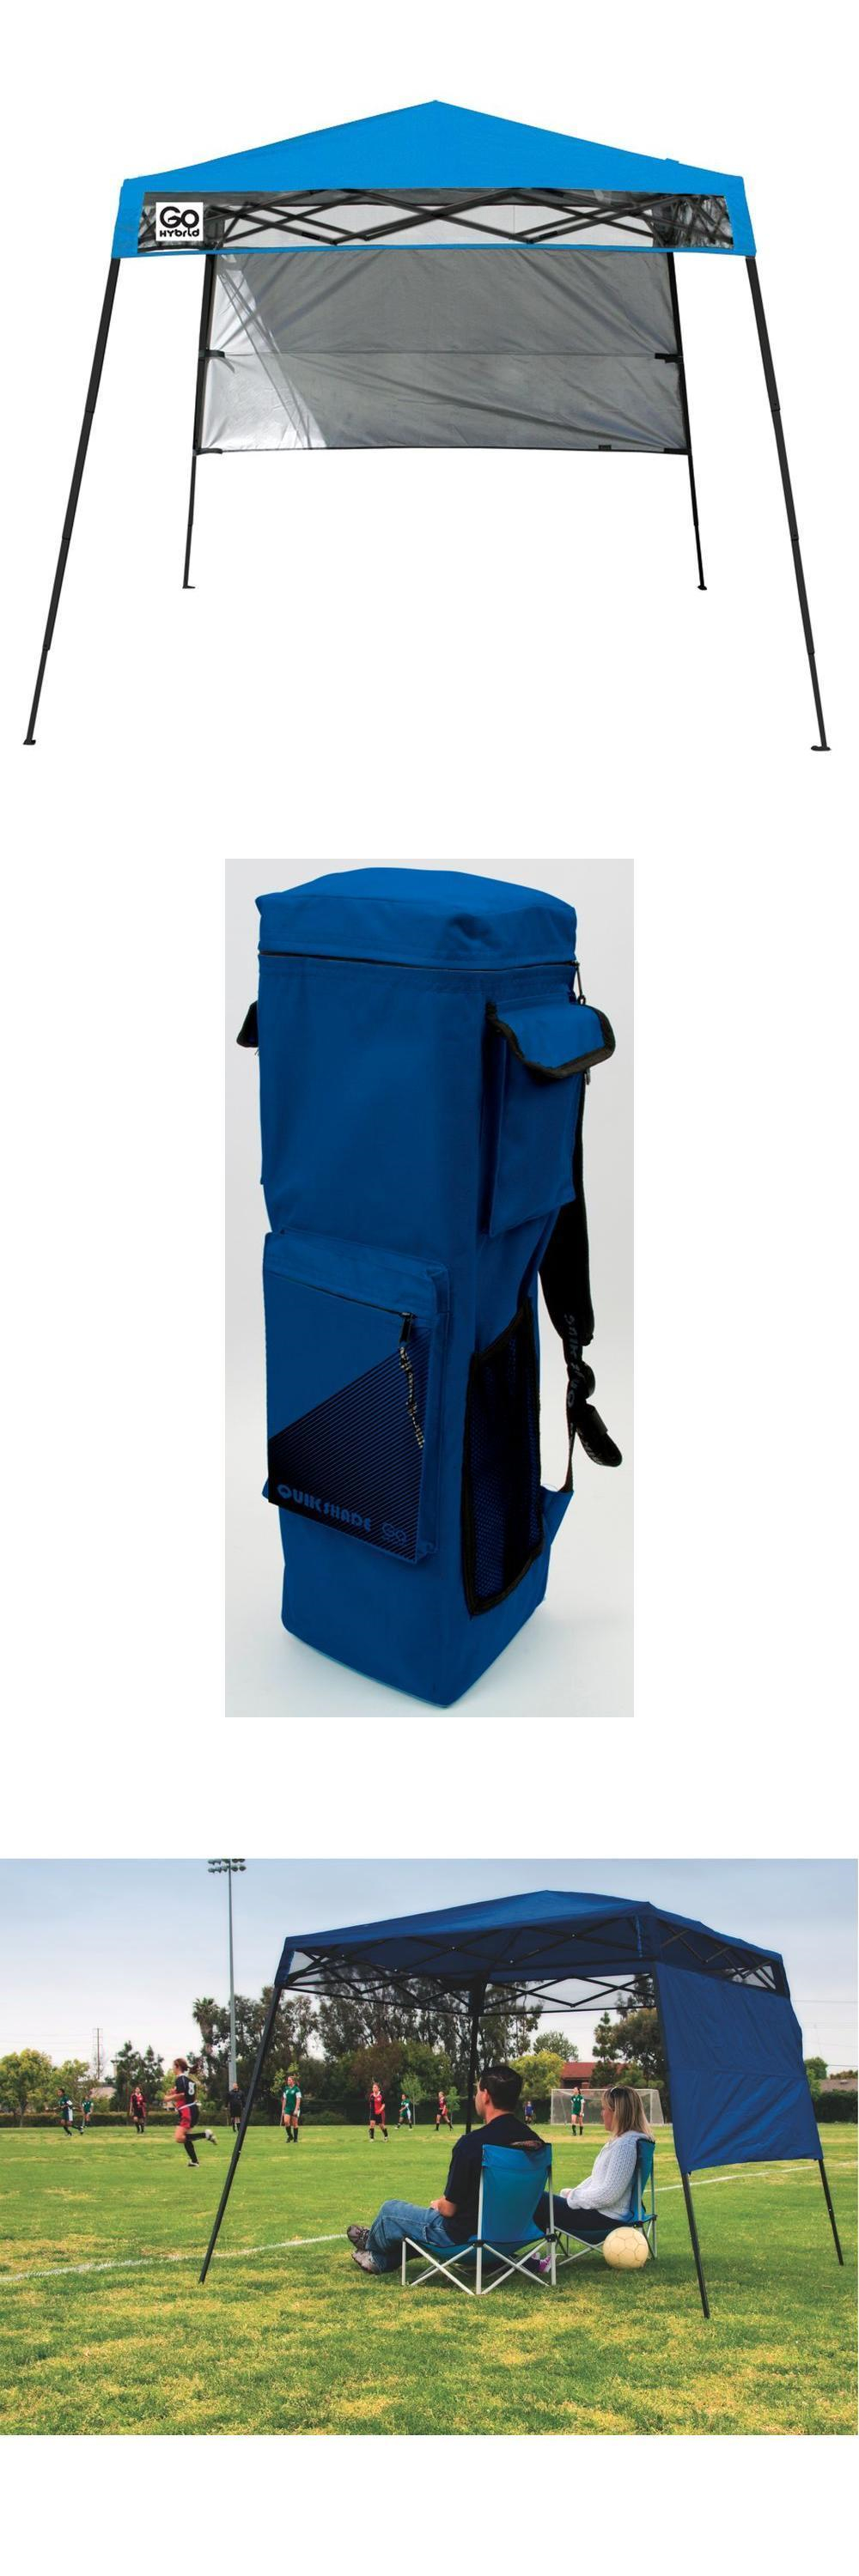 Canopies and Shelters 179011 6 Ft. X 6 Ft. Blue Compact Backpack Canopy  sc 1 st  Pinterest & Canopies and Shelters 179011: 6 Ft. X 6 Ft. Blue Compact Backpack ...